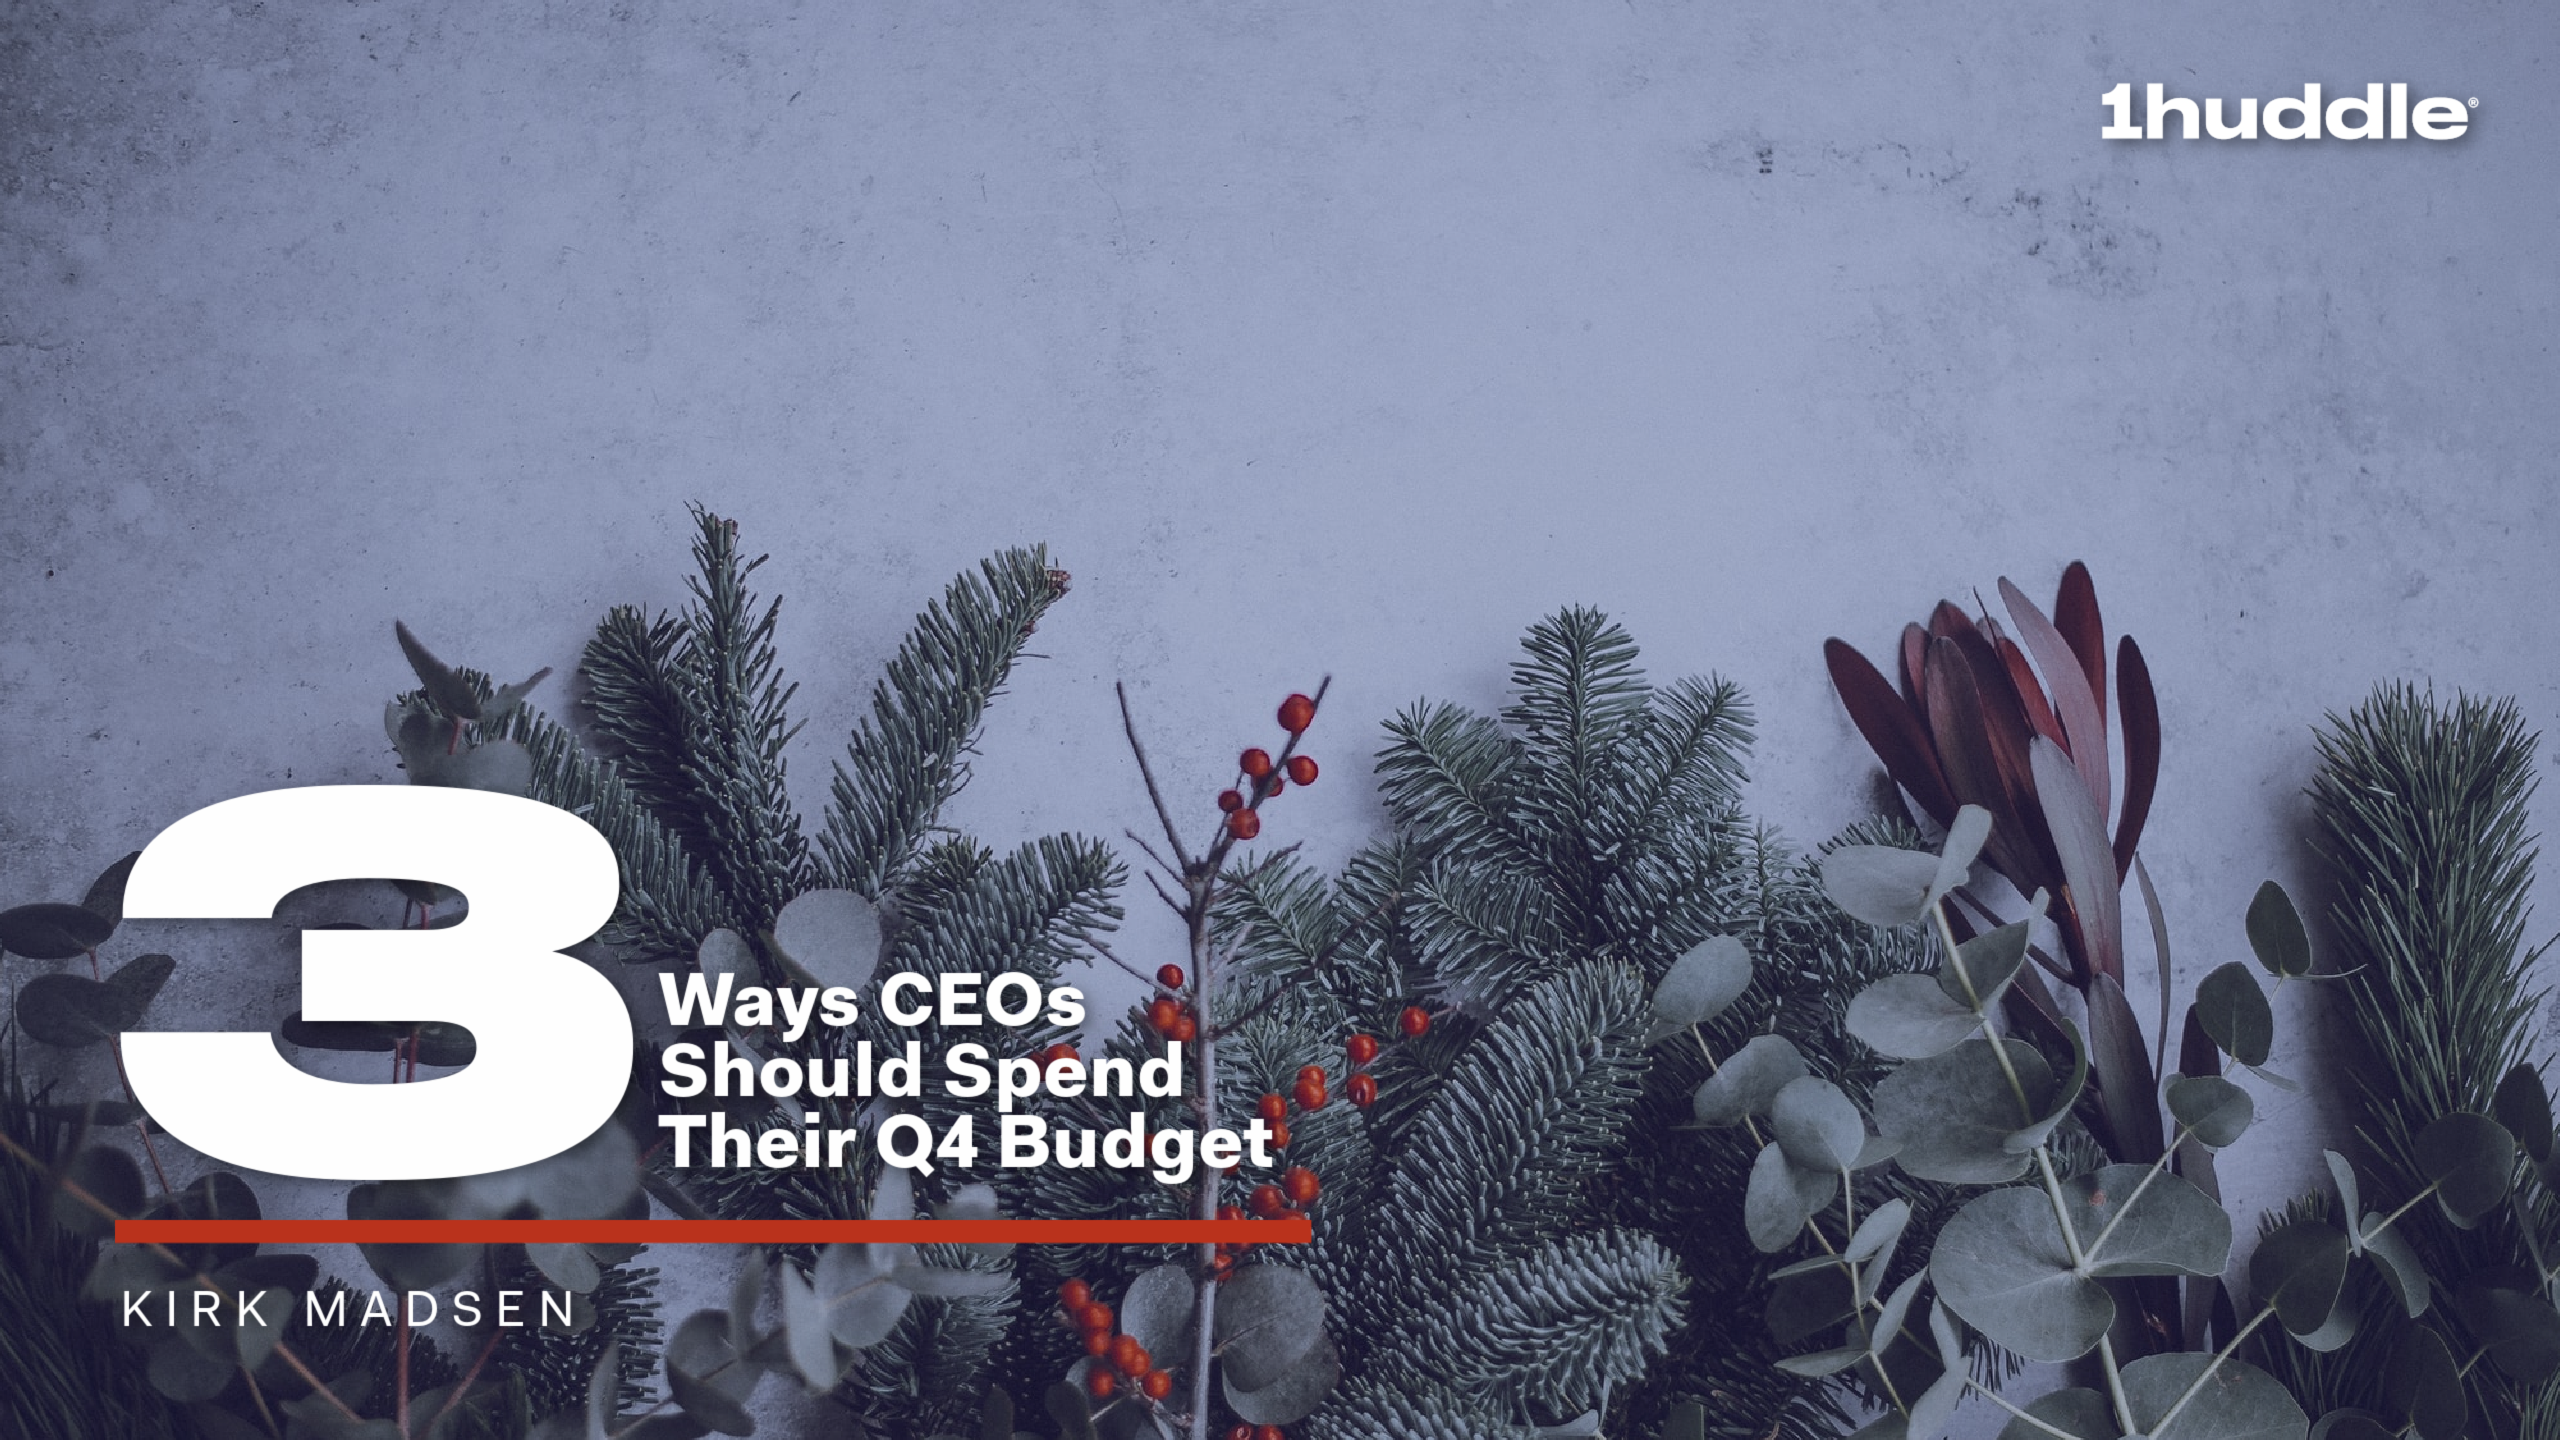 3 Ways CEOs Should Spend Their Q4 Budget